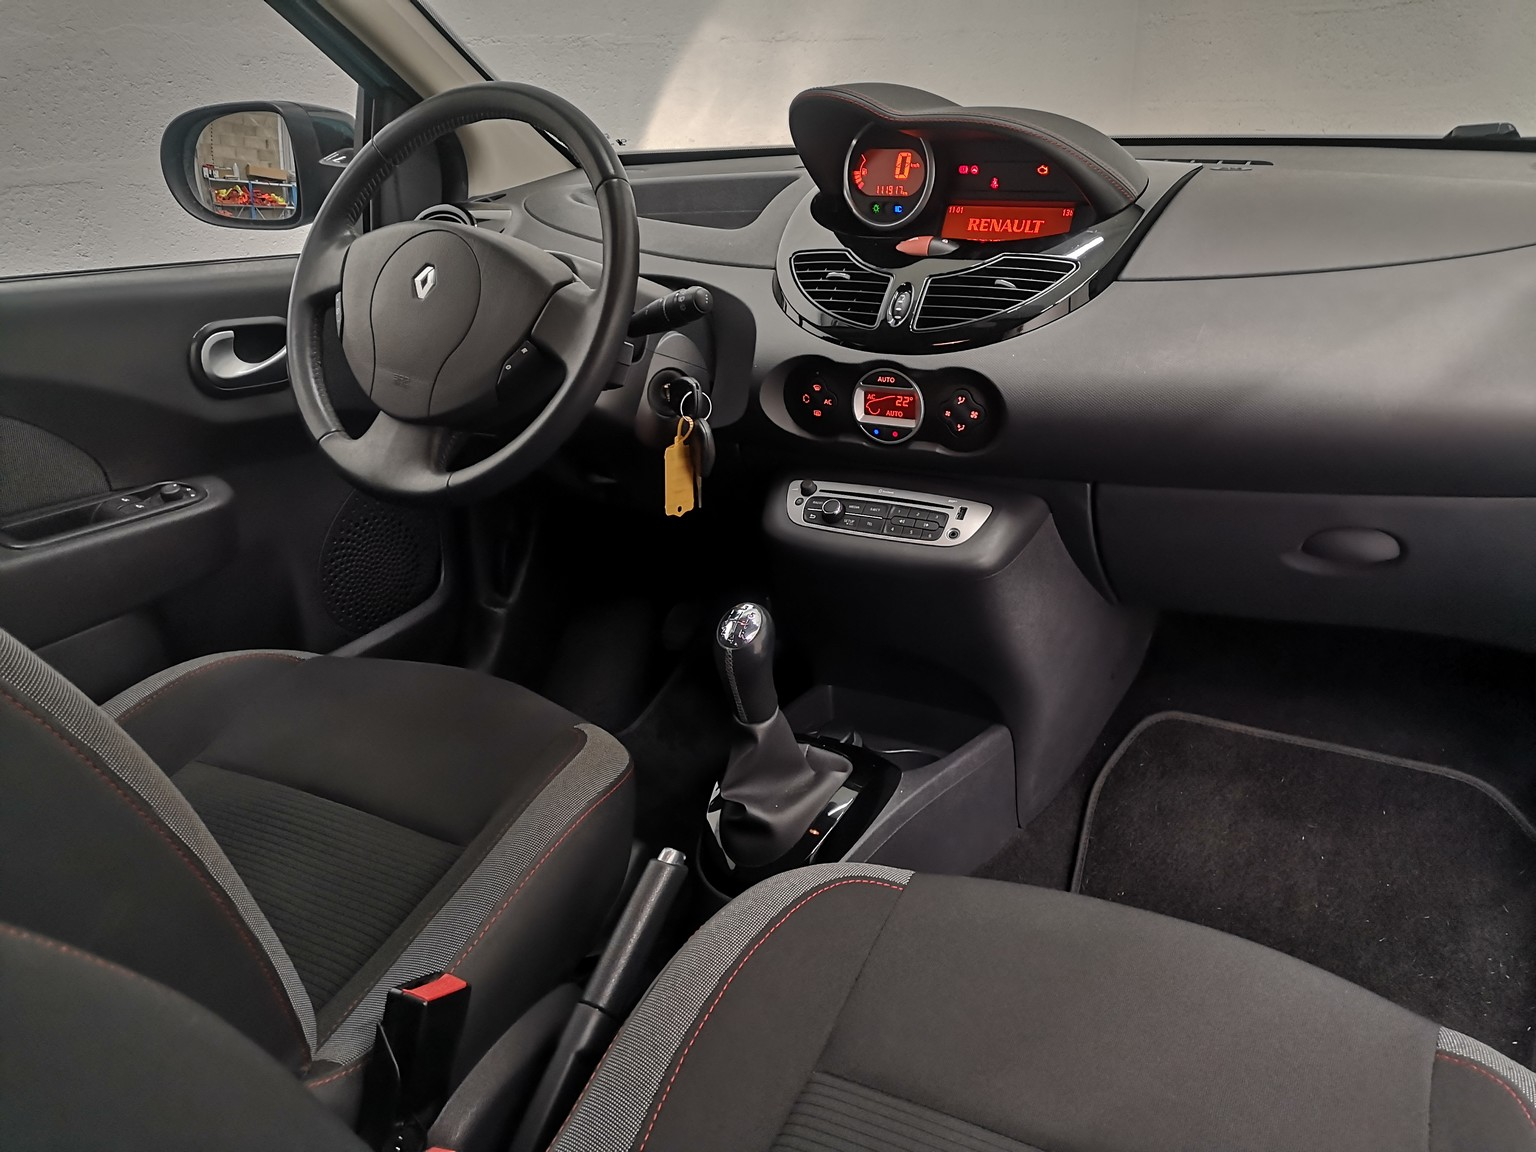 RENAULT TWINGO II 2013 à 6490 € - Photo n°31